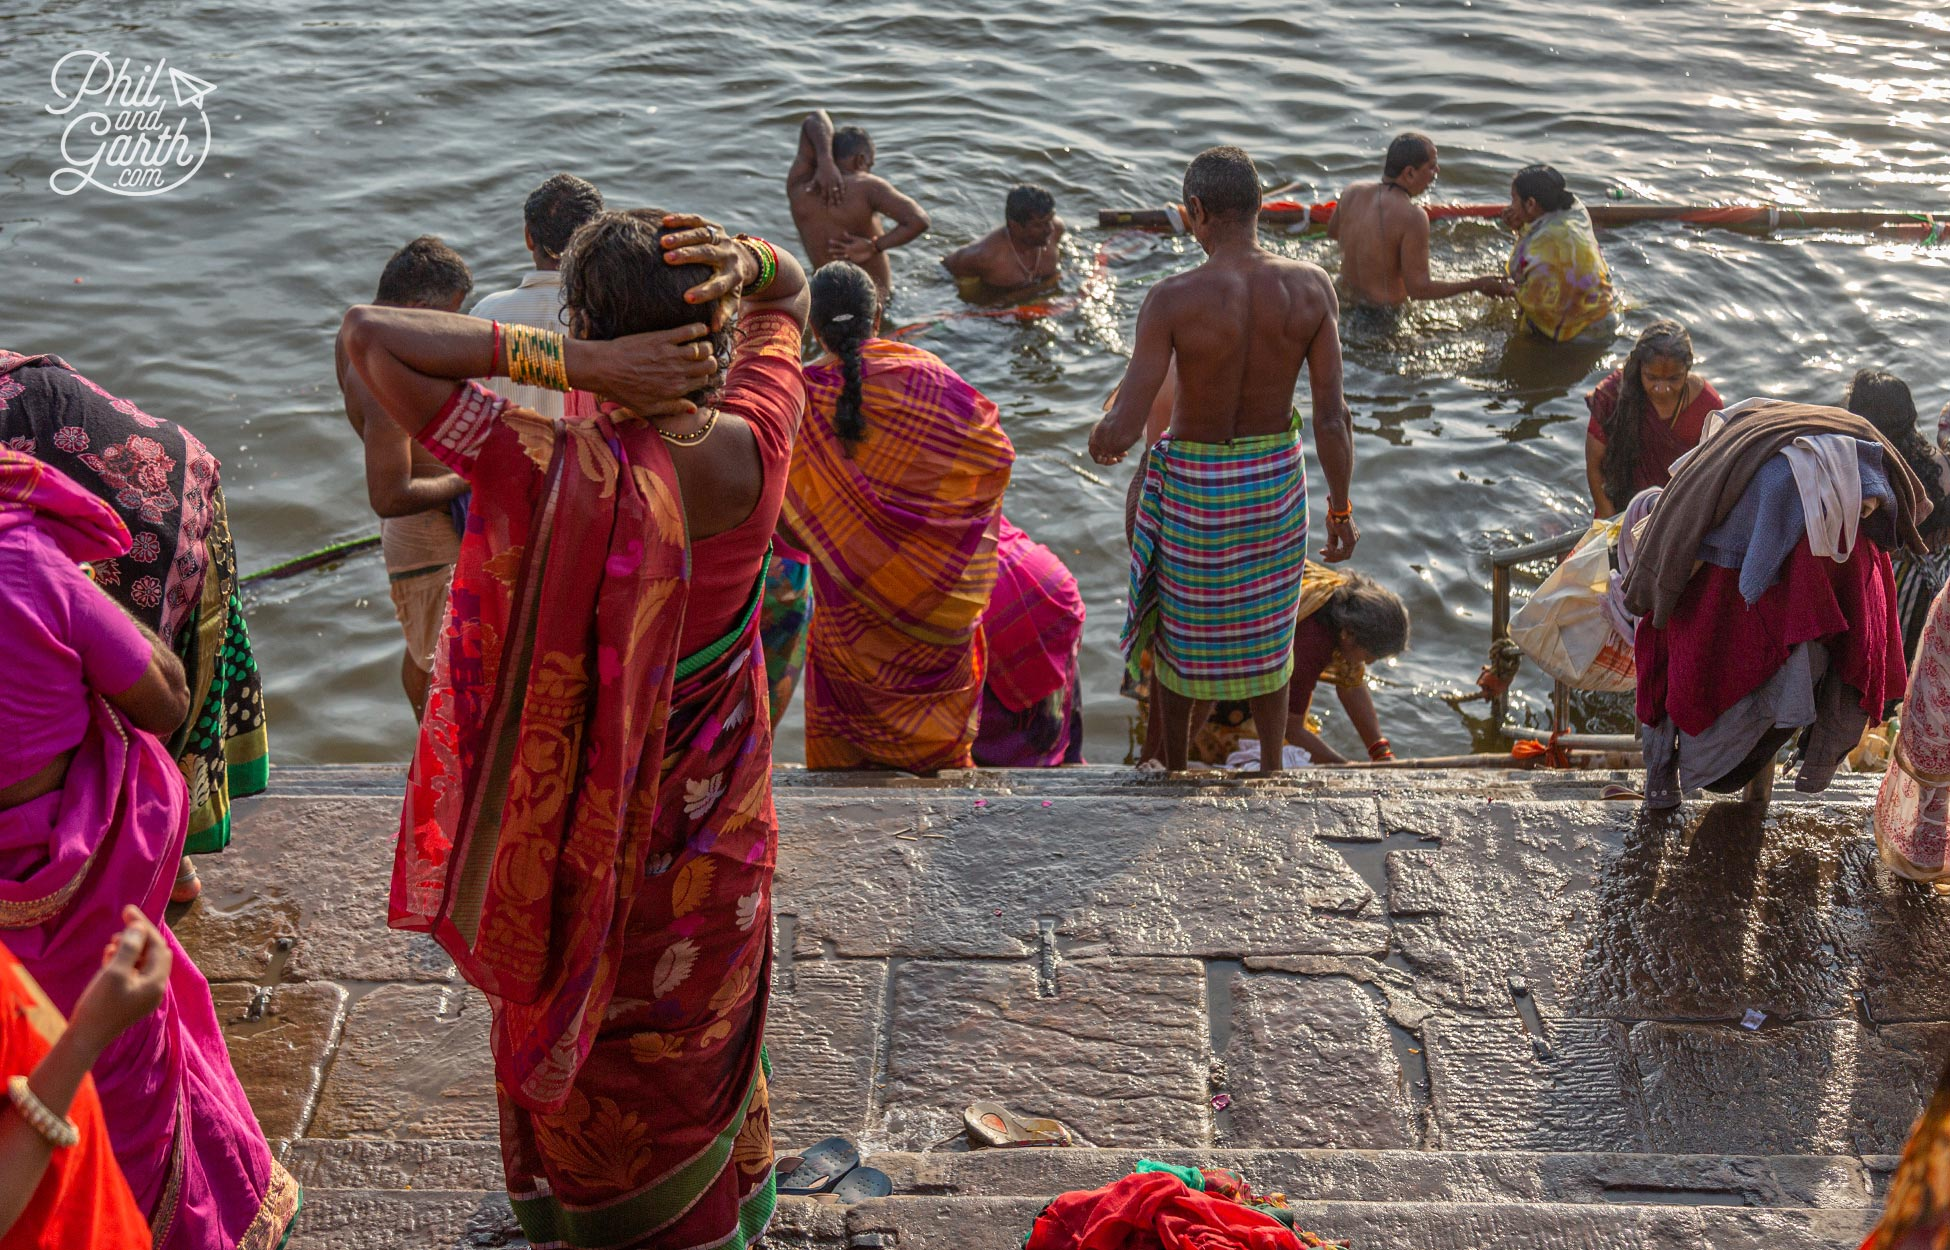 Religious rituals and bathing is a common sight everyday in Varanasi